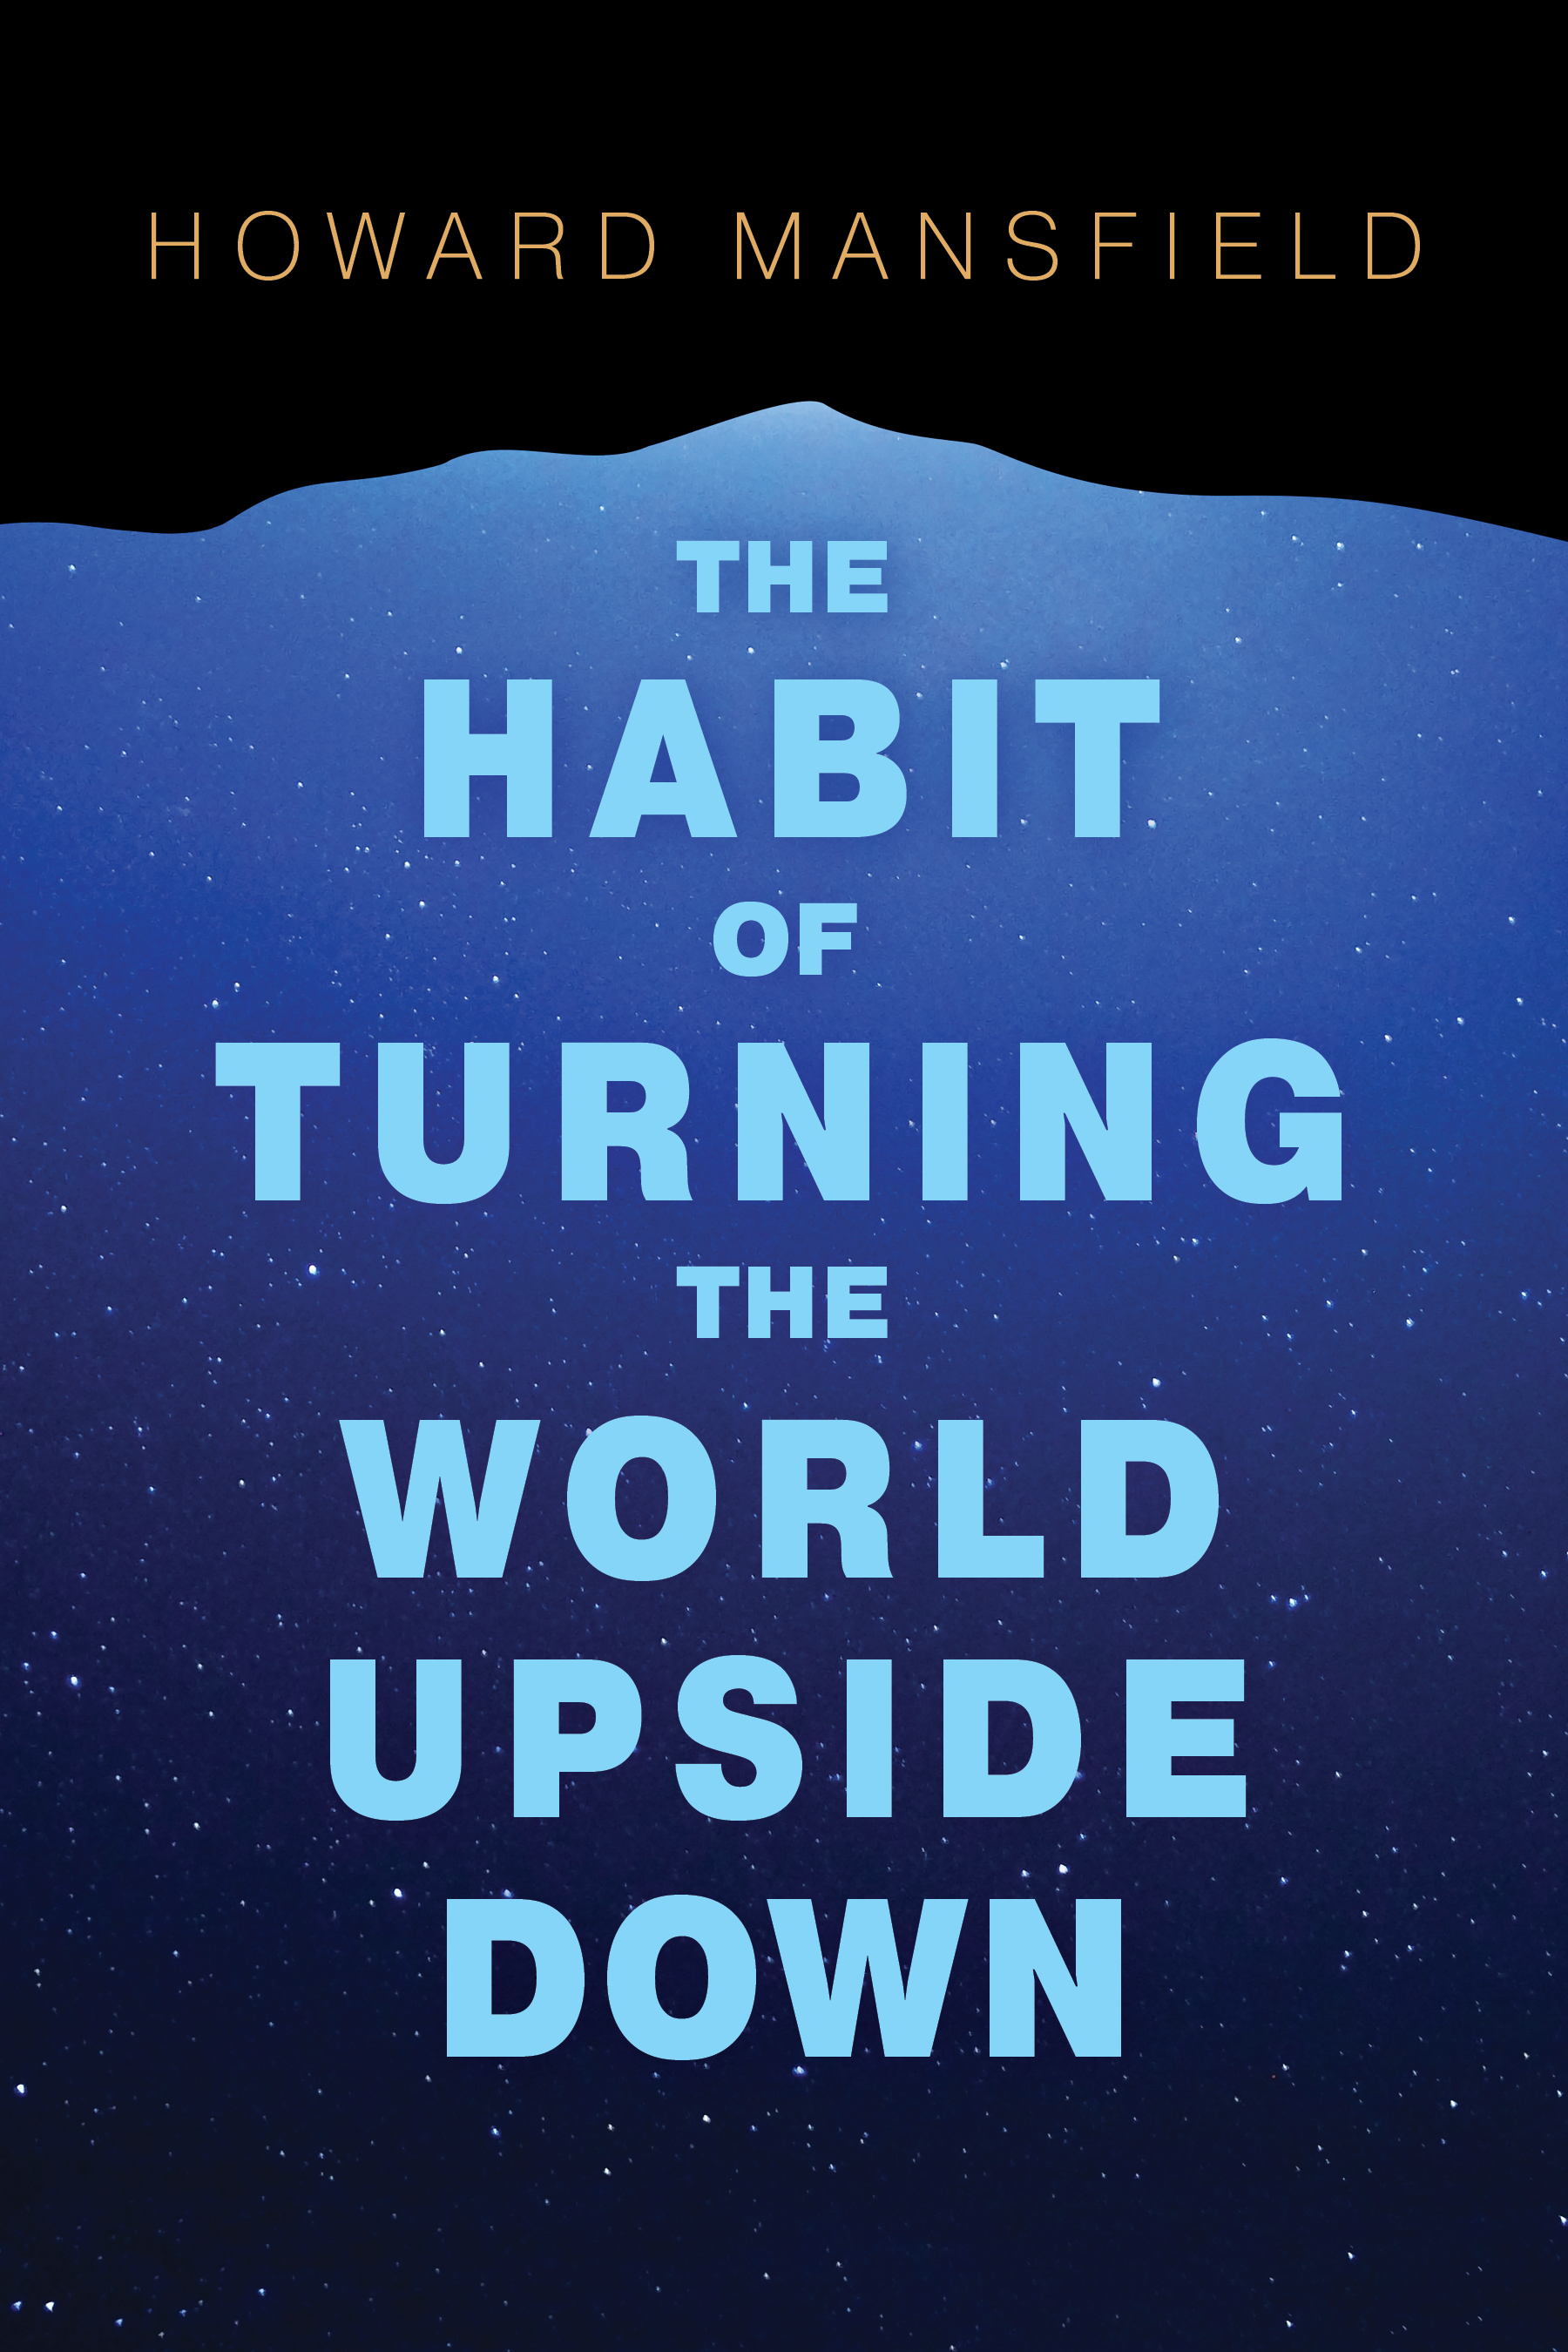 The Habit of Turning the World Upside Down